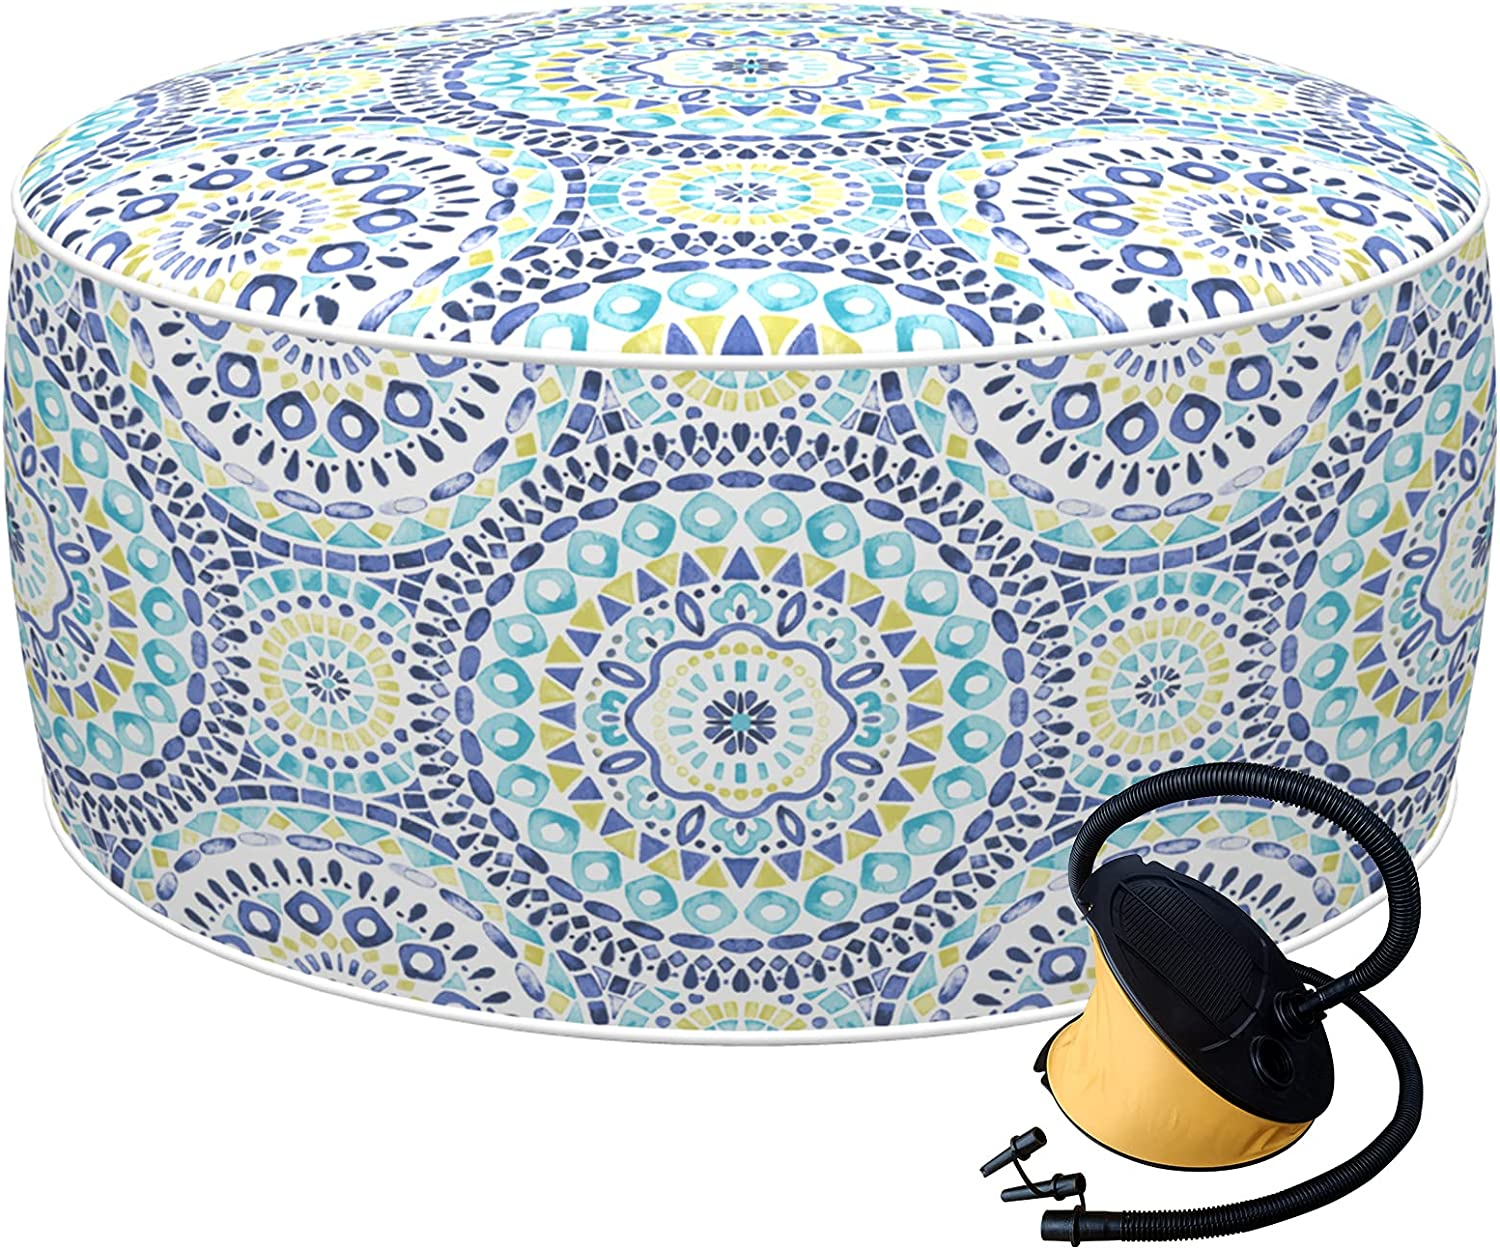 LVTXIII Inflatable Stool Ottoman Footrest with Handle and Air Pump, All Weather Foot Rest for Kids or Adults, Indoor or Outdoor Use for Home Patio Garden and Camping, D21 x H9 , Delancey Lagoon